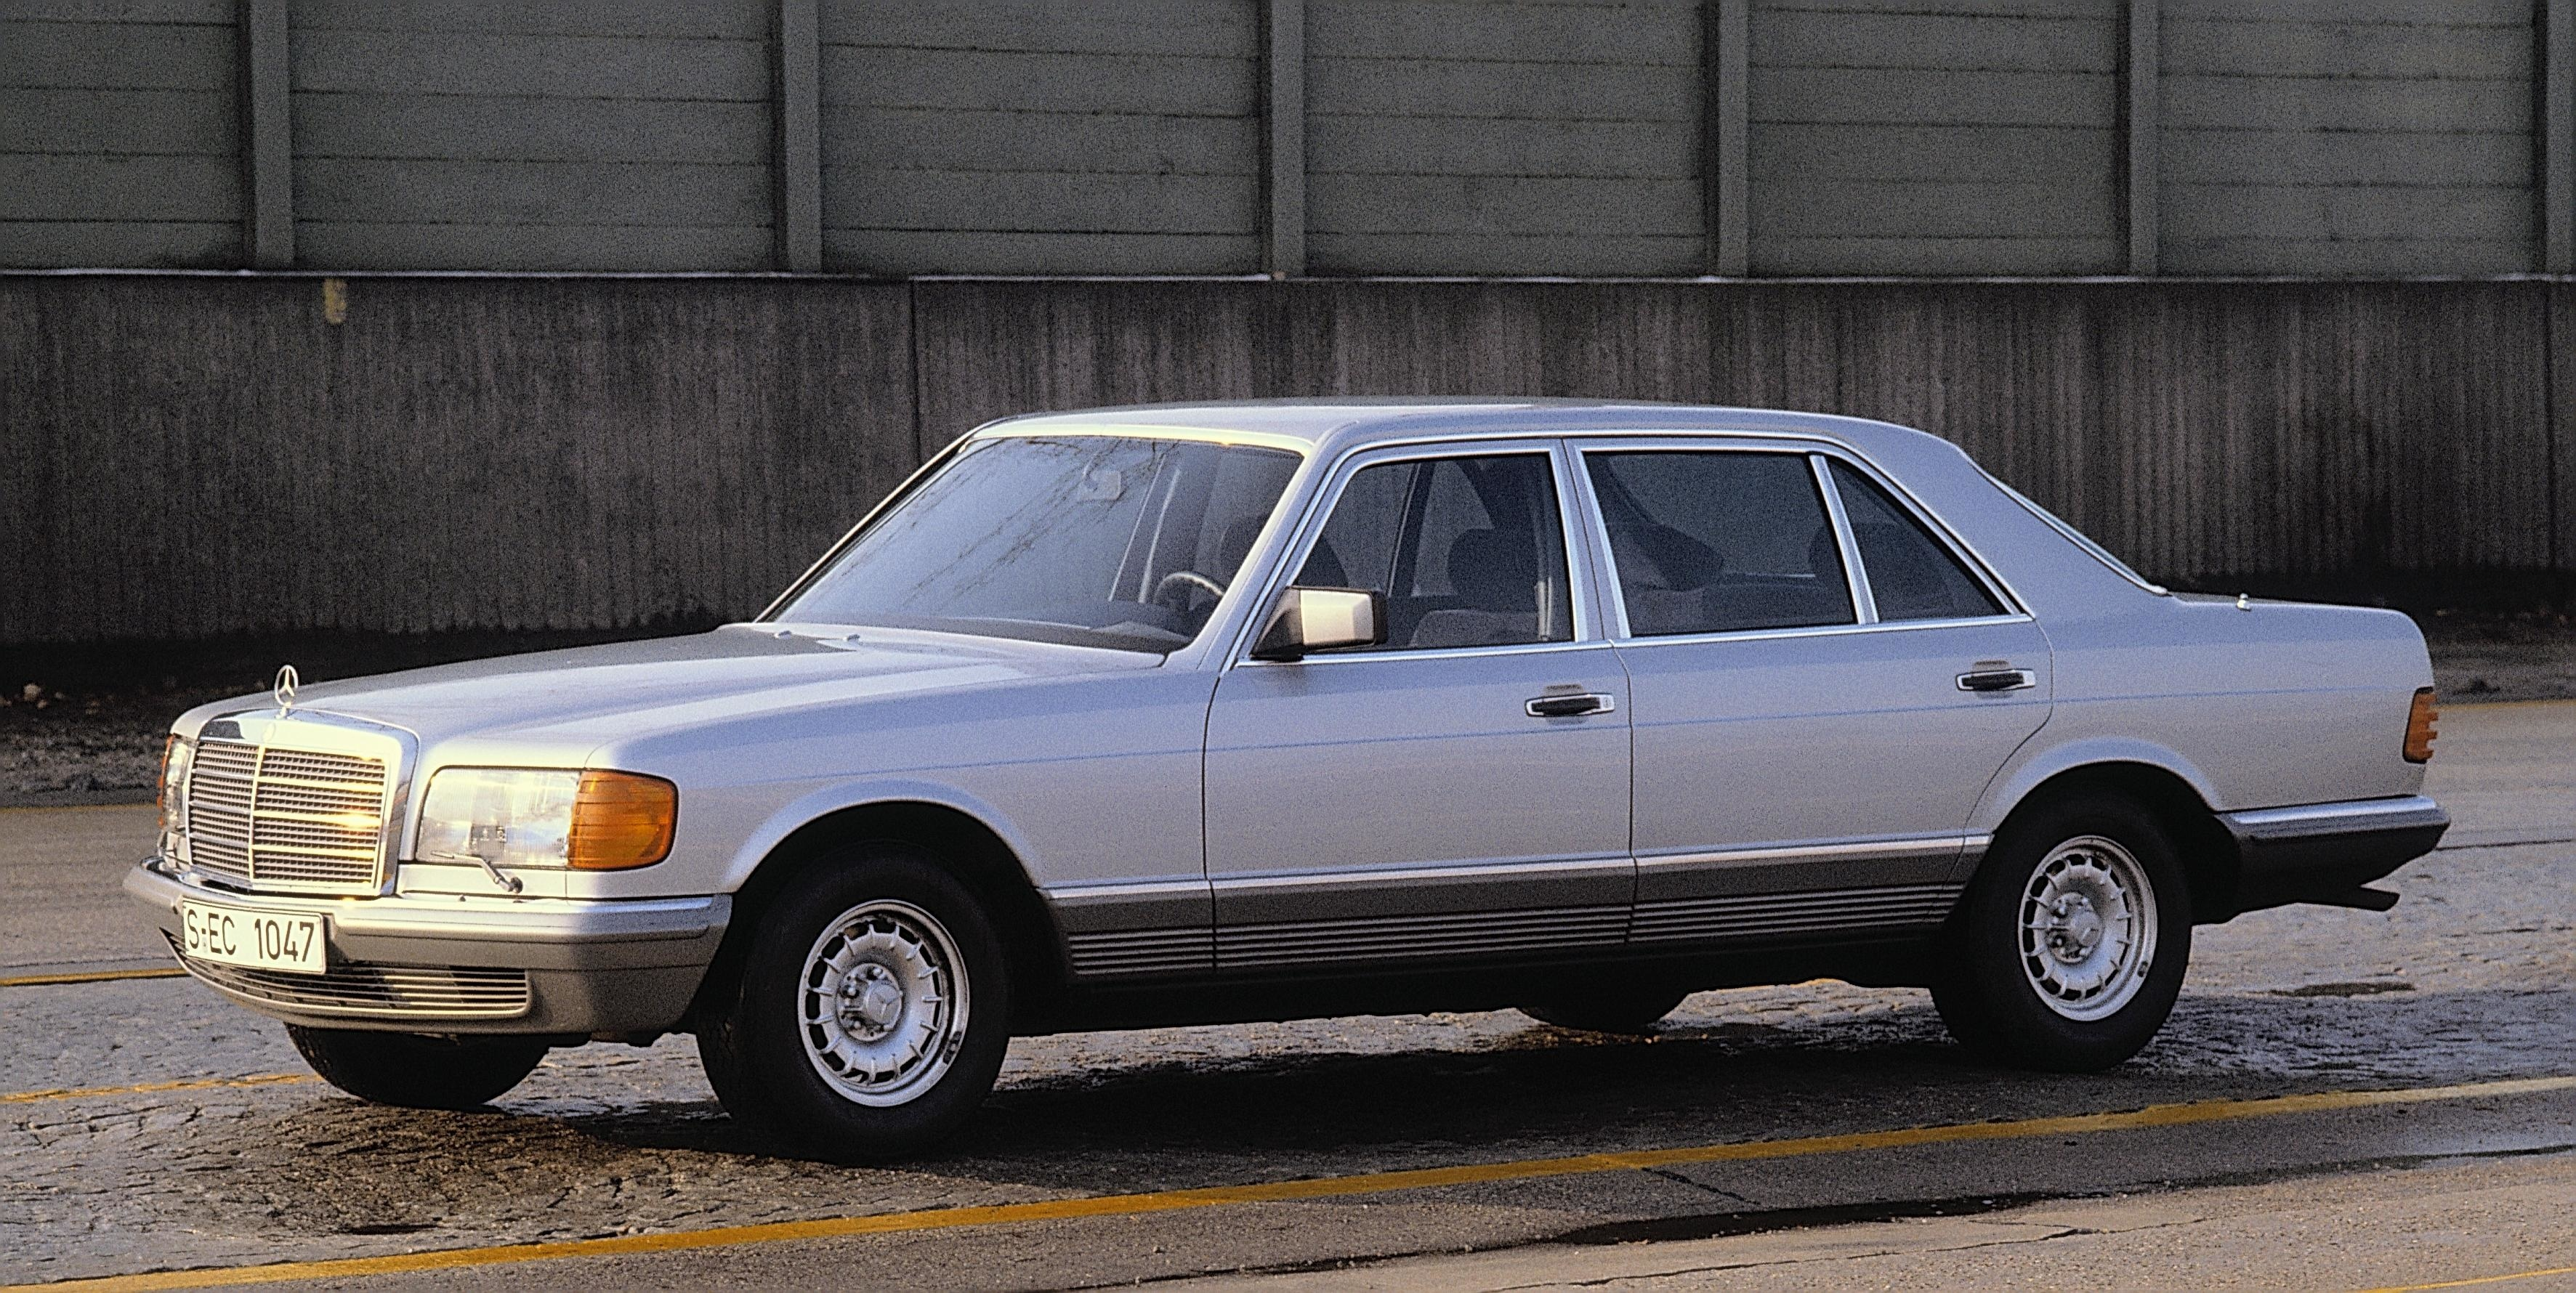 Mercedes W124 Modified Inspirational Mercedes Benz W126 Body Kit Ecosia-1355 Of Fresh Mercedes W124 Modified